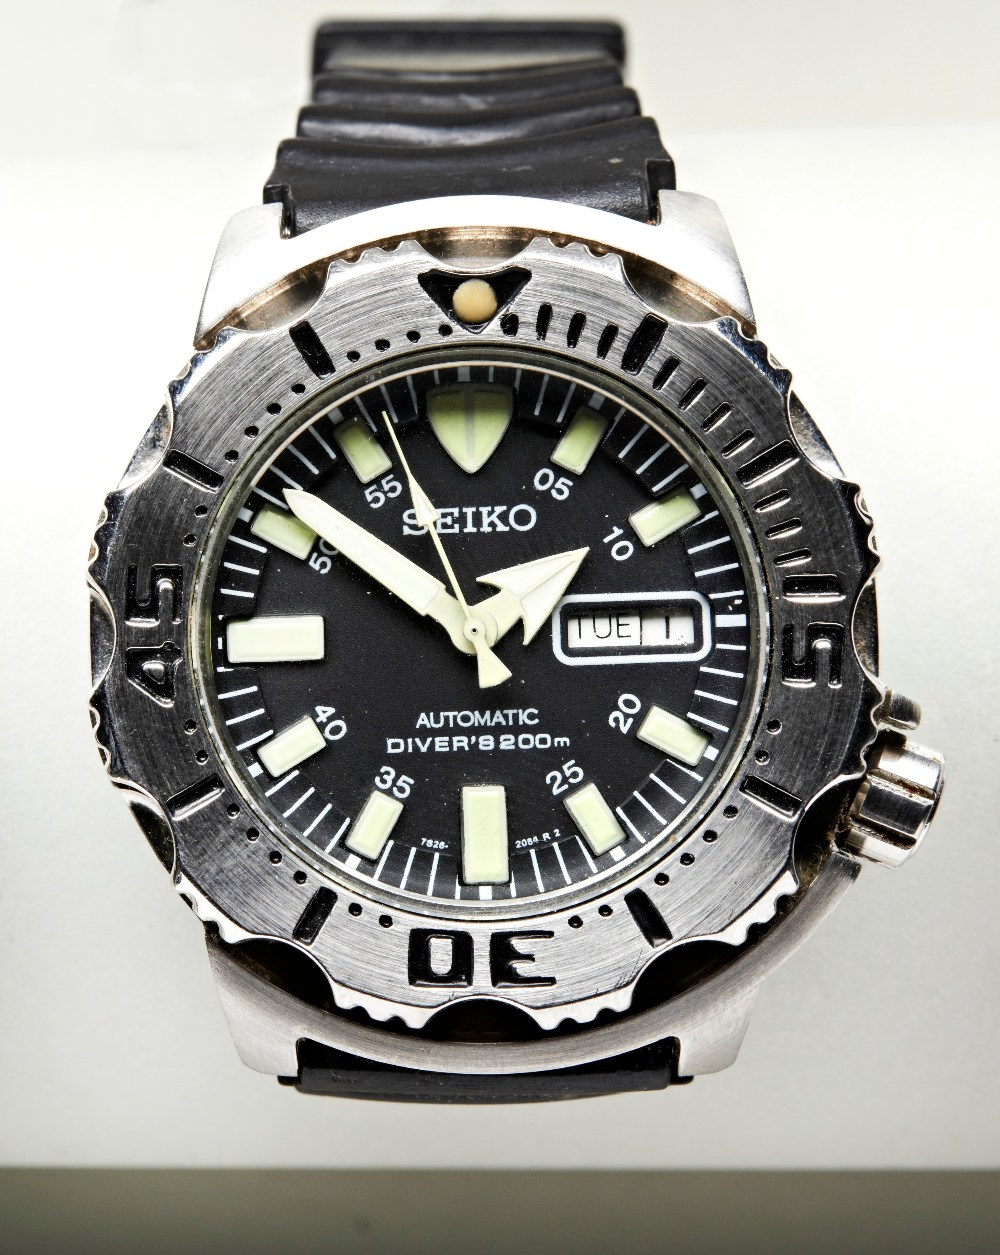 SEIKO 'BLACK MONSTER' STEEL AUTOMATIC DIVERS WATCH, with day/date and luminous dial markers, plastic